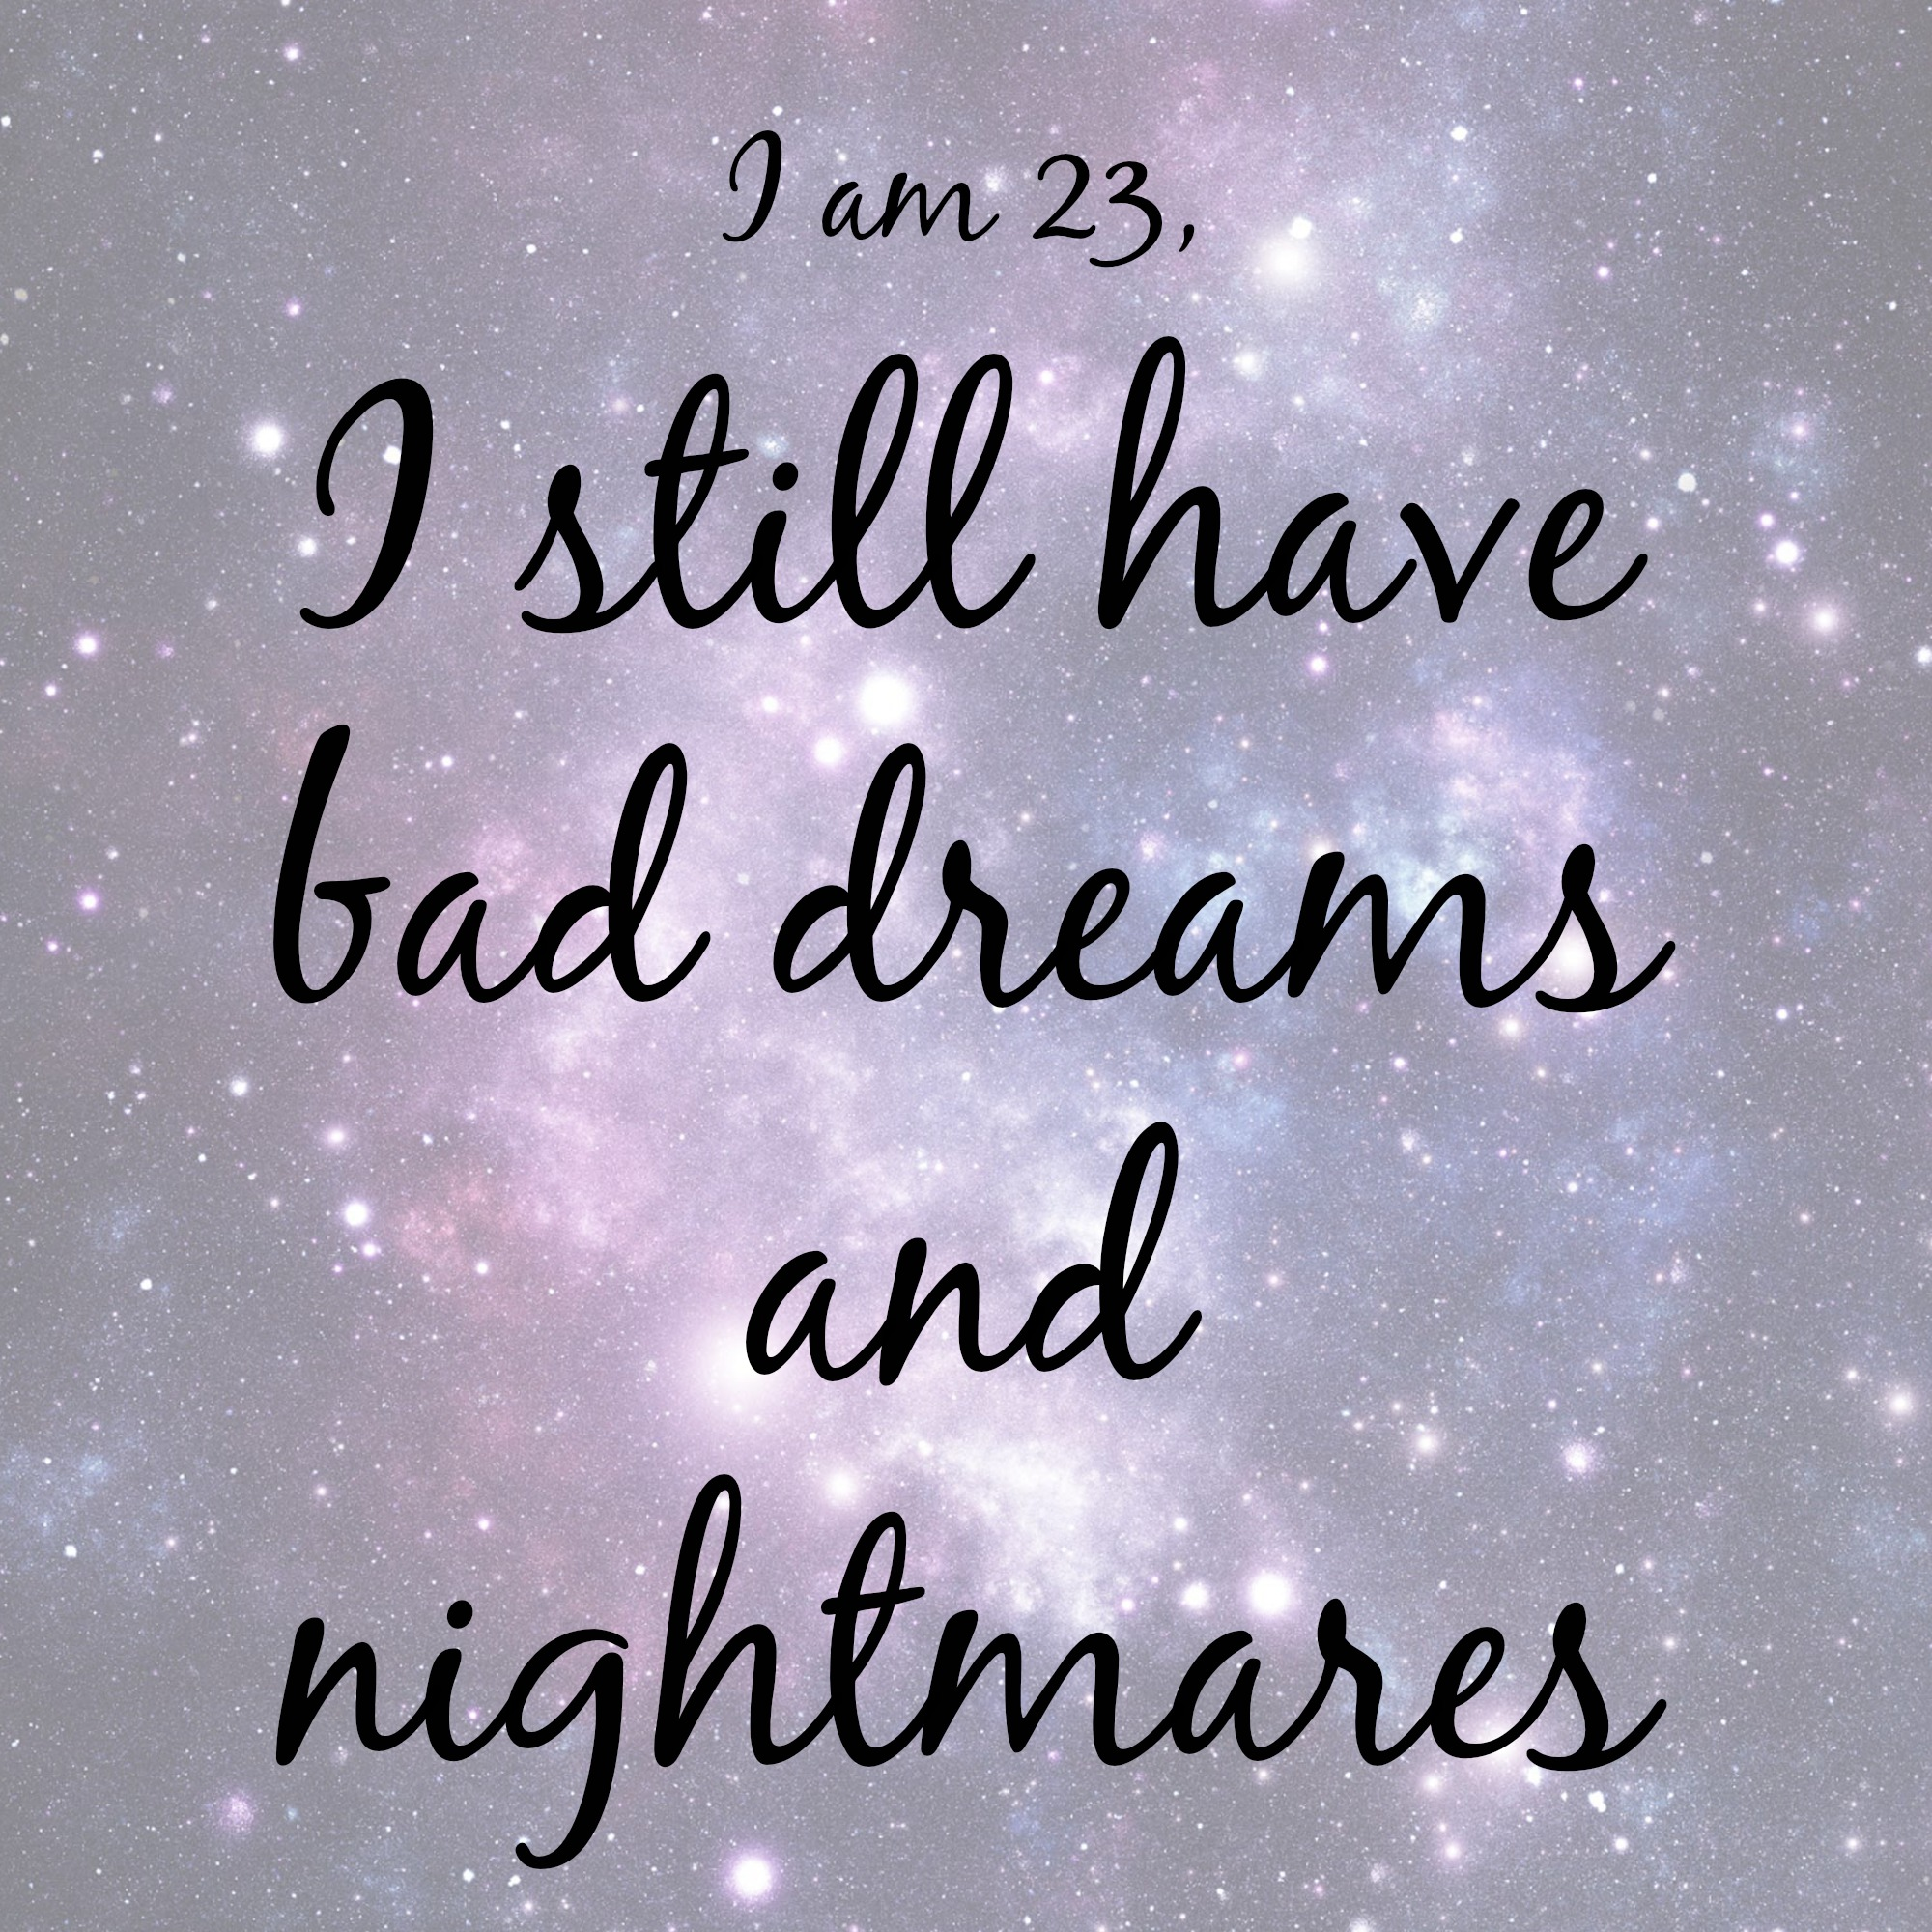 Dream Quotes: Quotes About Dreams And Nightmares. QuotesGram